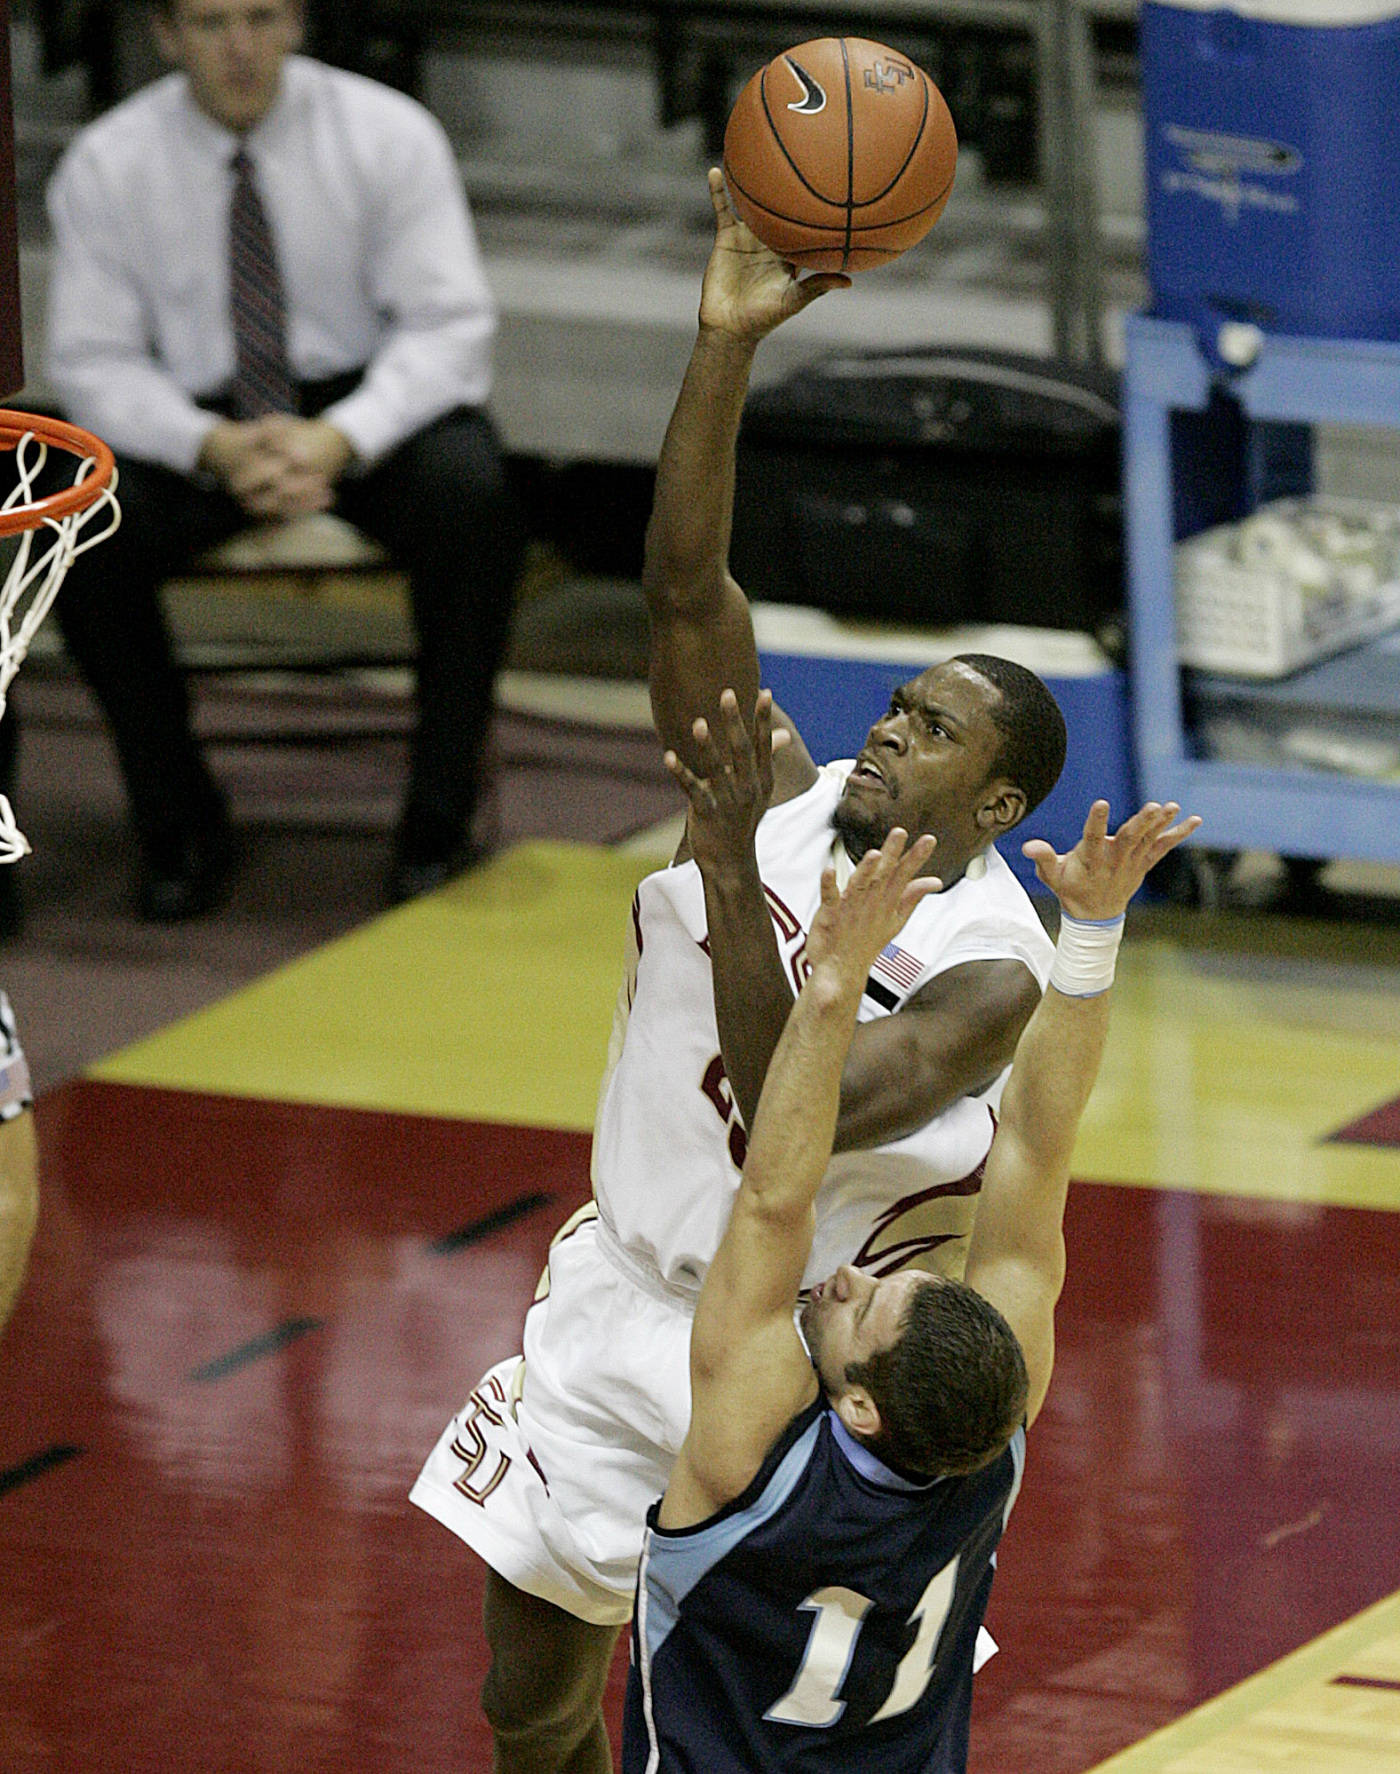 Florida State's Toney Douglas soars and scores over Maine's Jason Hight in the first half.